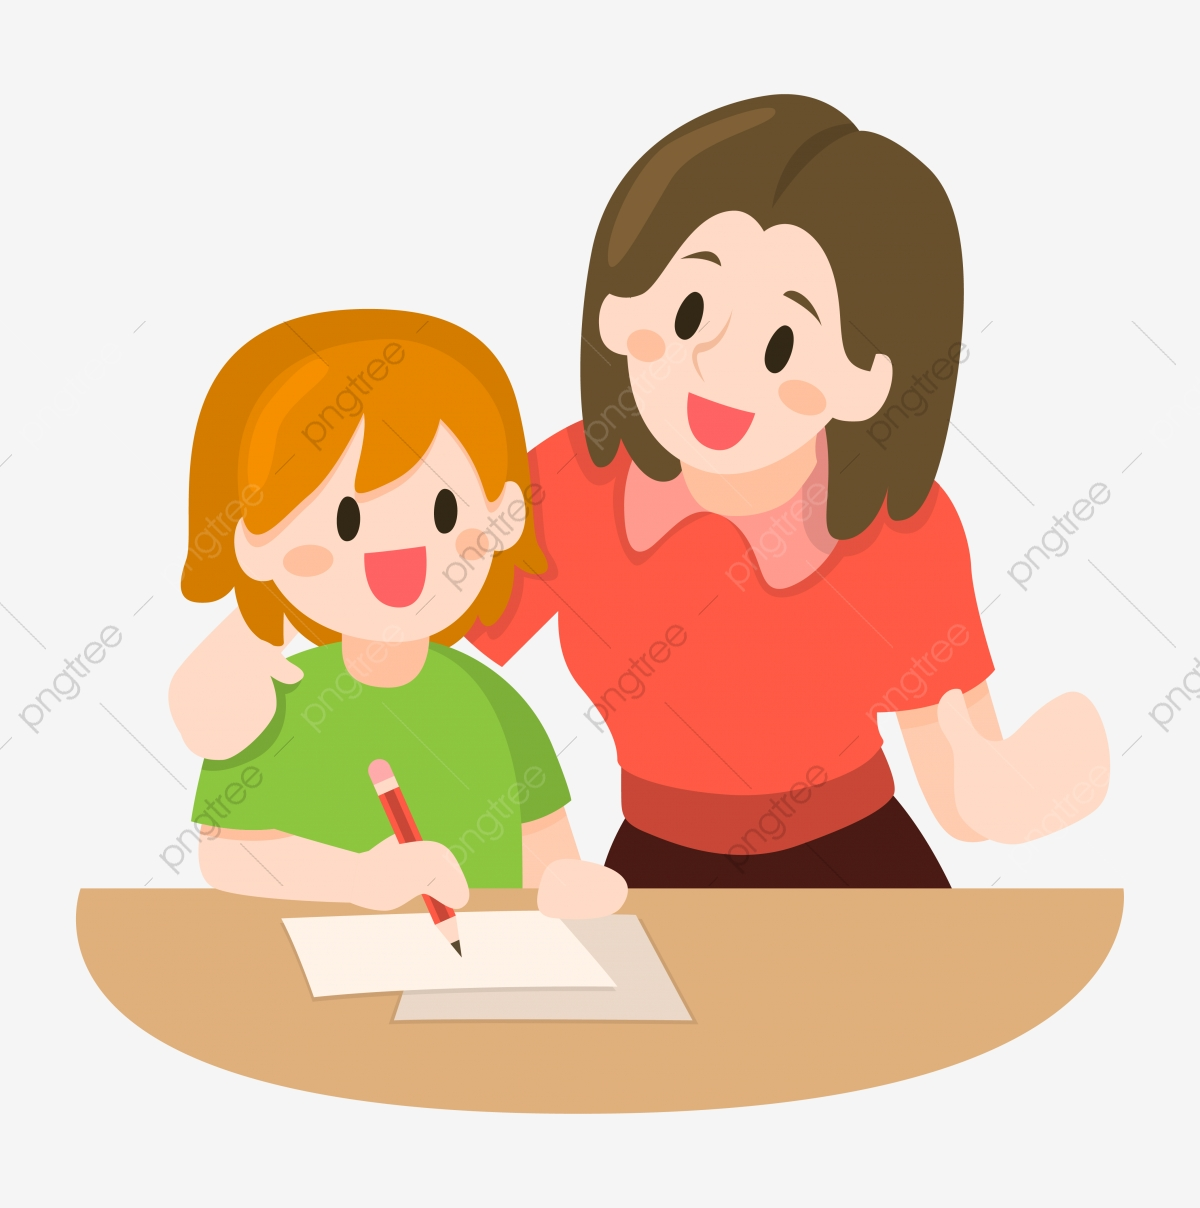 Mother Teaching Her Children Illustration Write Study Teach Png And Vector With Transparent Background For Free Download